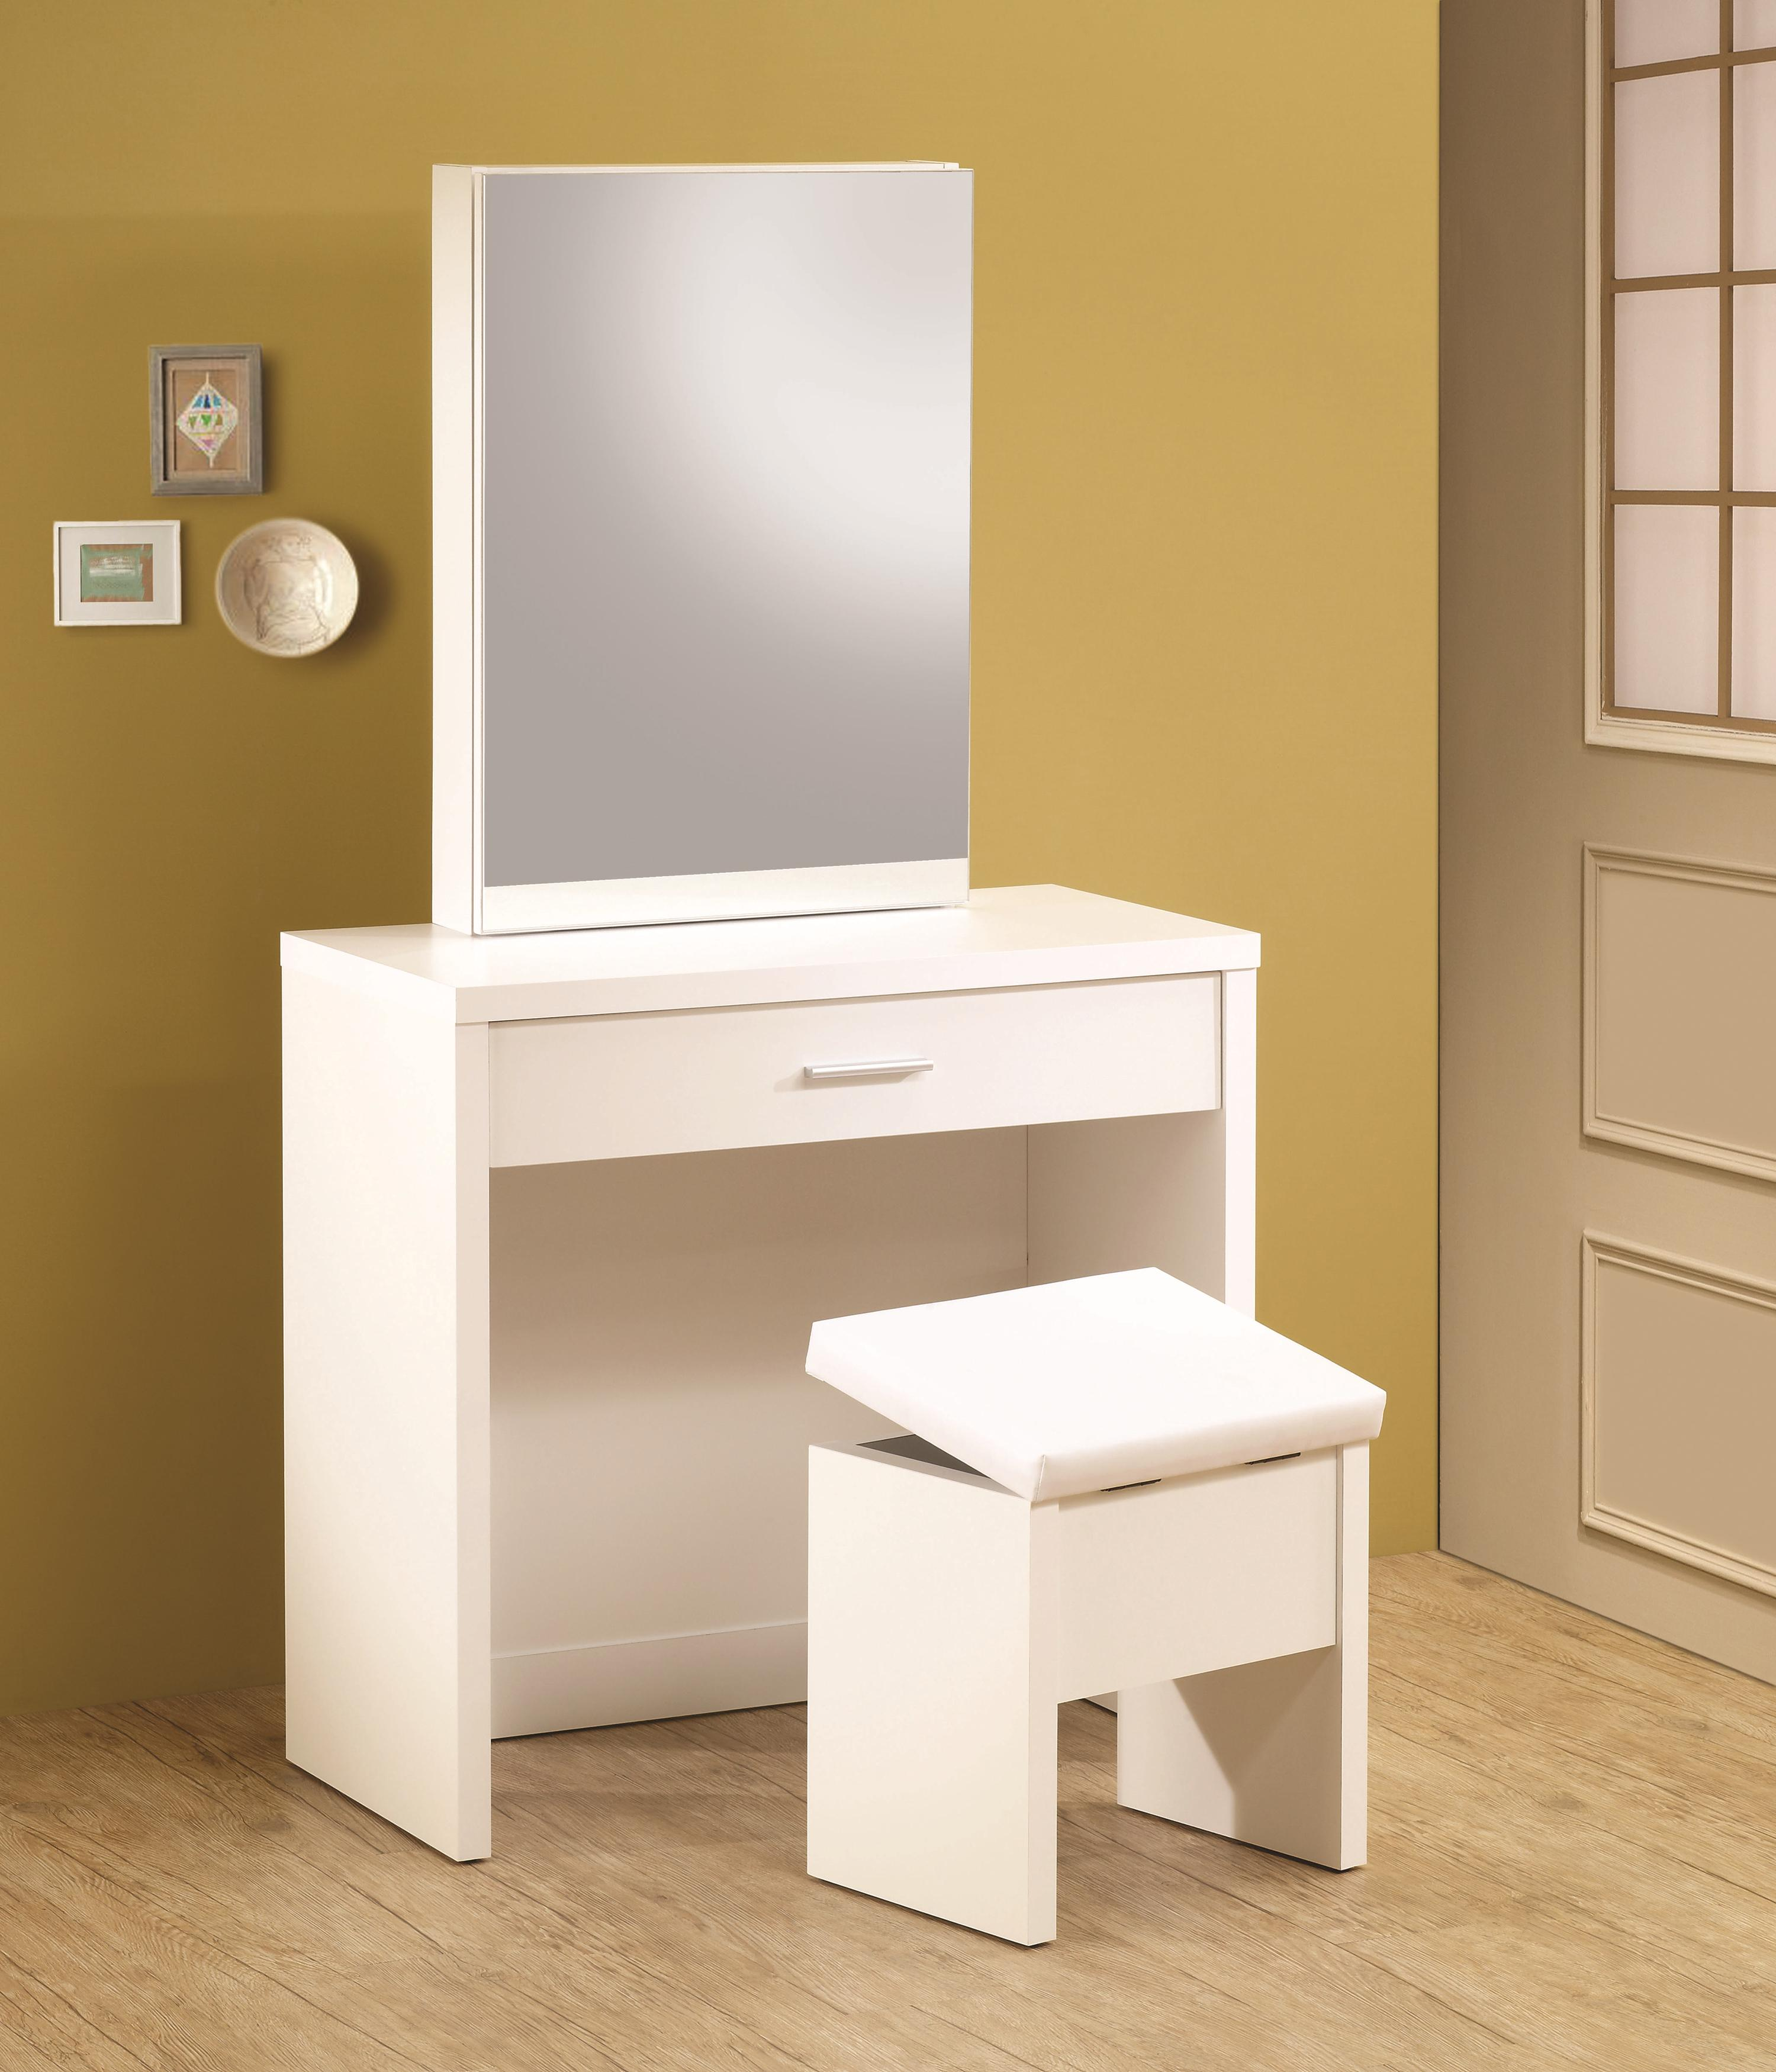 Coaster Vanities Vanity Set Item Number 300290